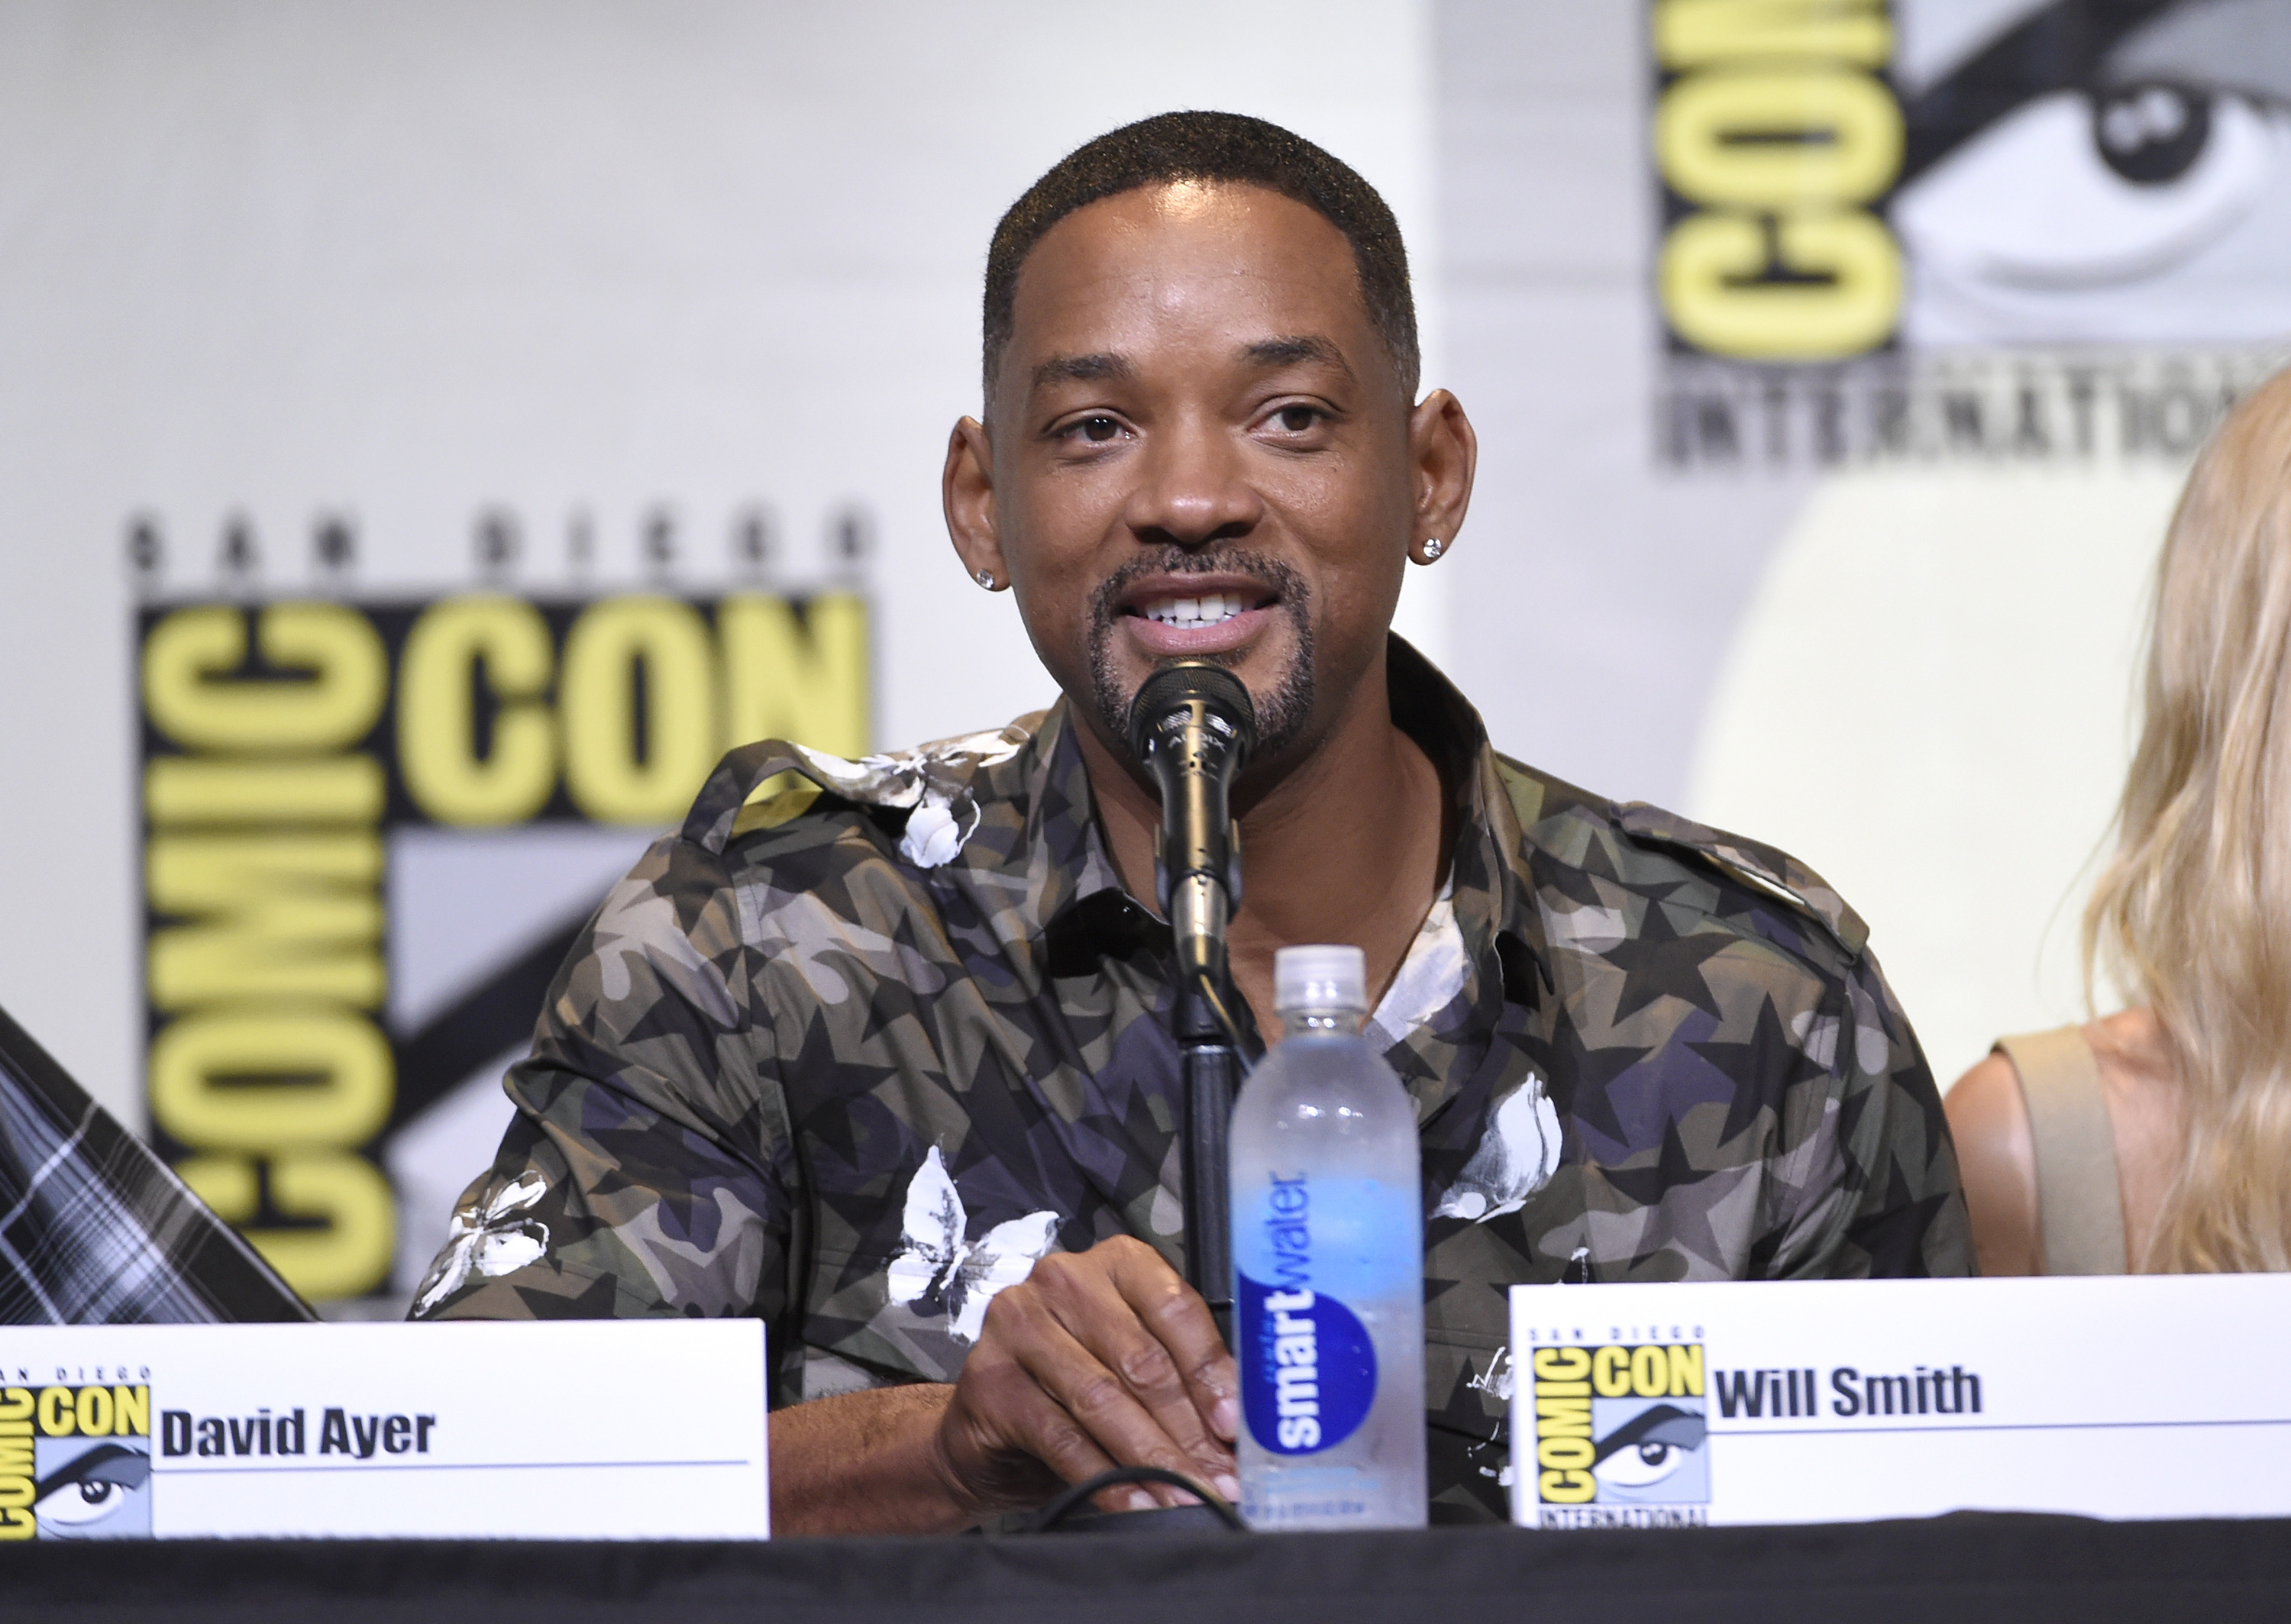 WATCH: Will Smith Performs 'Miami' For The First Time In Ages At 'Suicide Squad' Party